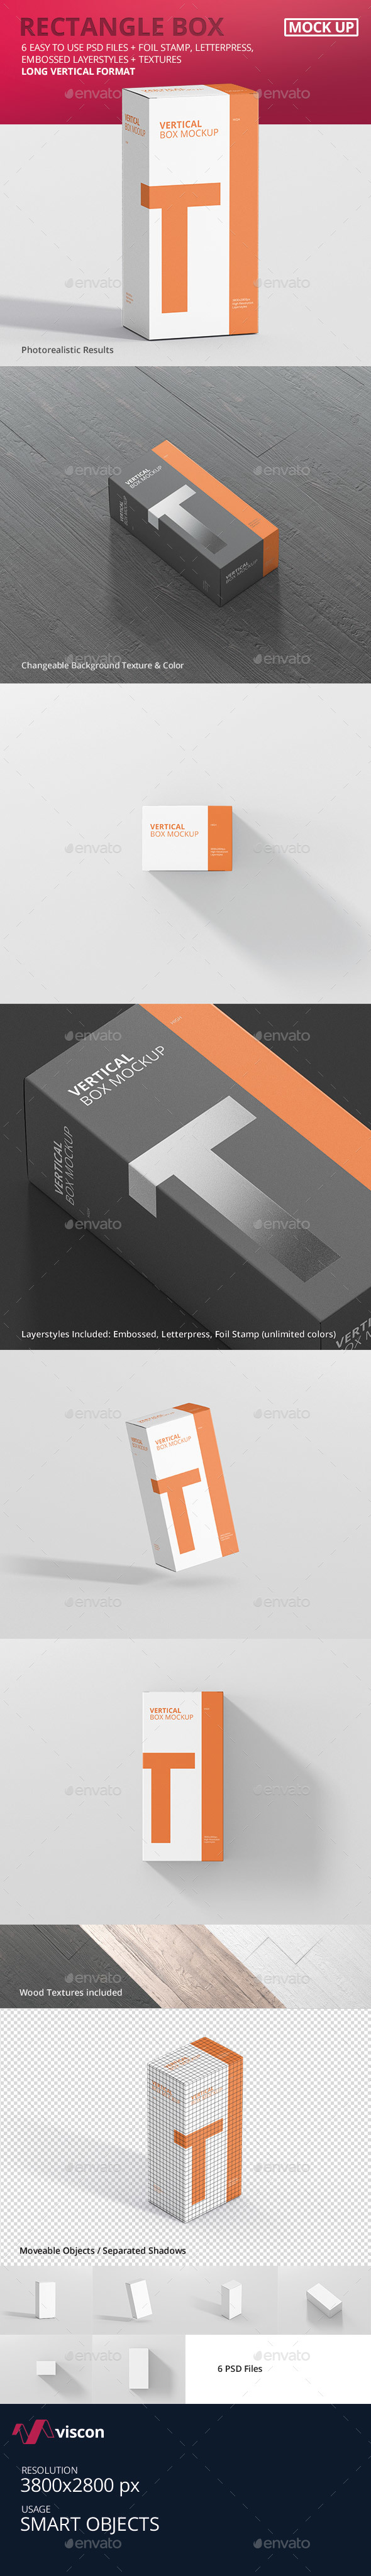 GraphicRiver Box Mockup Long Vertical Rectangle 21071216